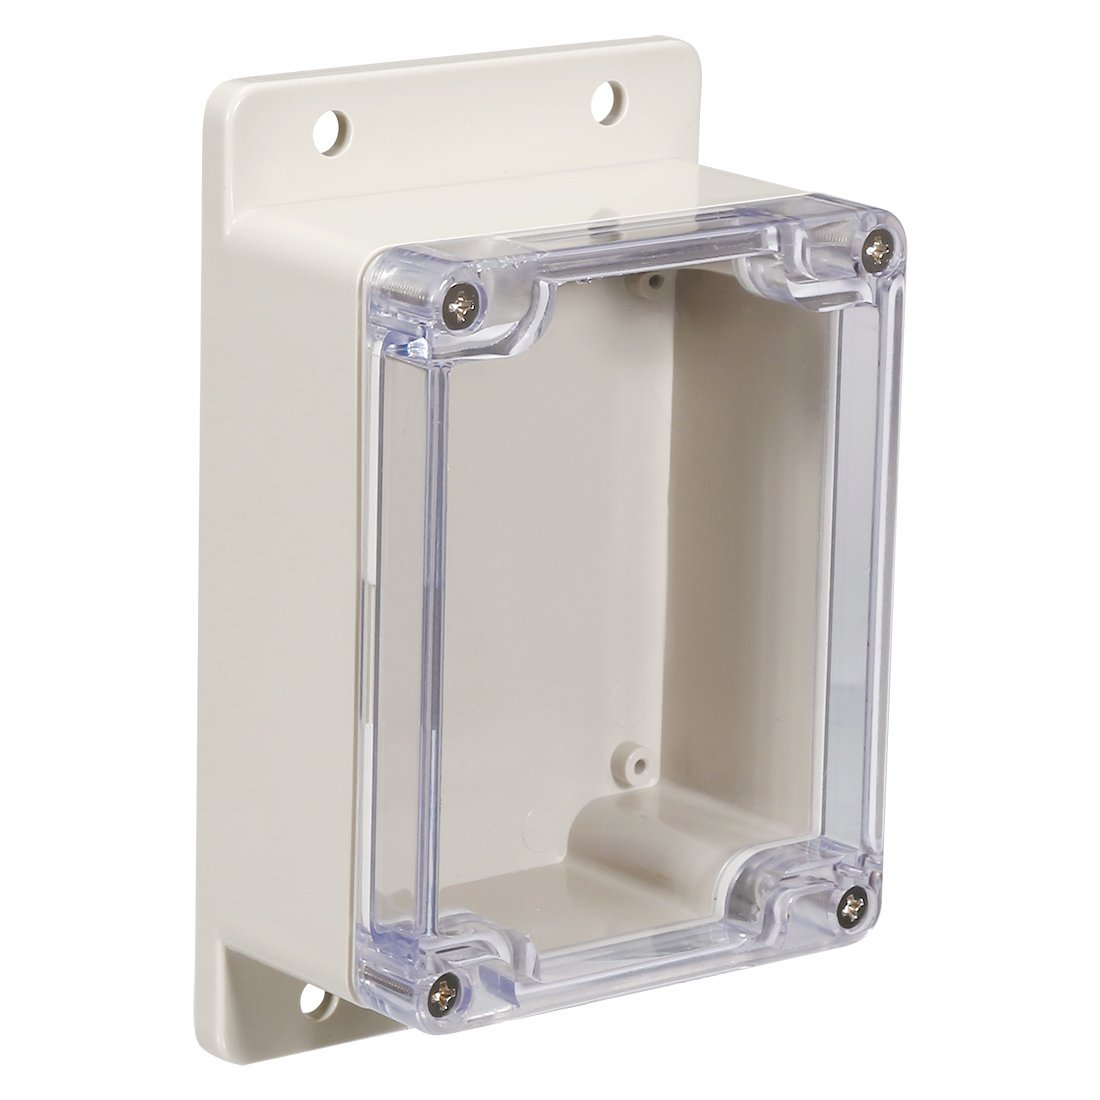 uxcell 115x90x55mm/4.53x3.54x2.17inch Wateproof Electronic ABS Plastic DIY Junction Project Box Enclosure Case Outdoor/Indoor with Clear Cover and Fixed Mount